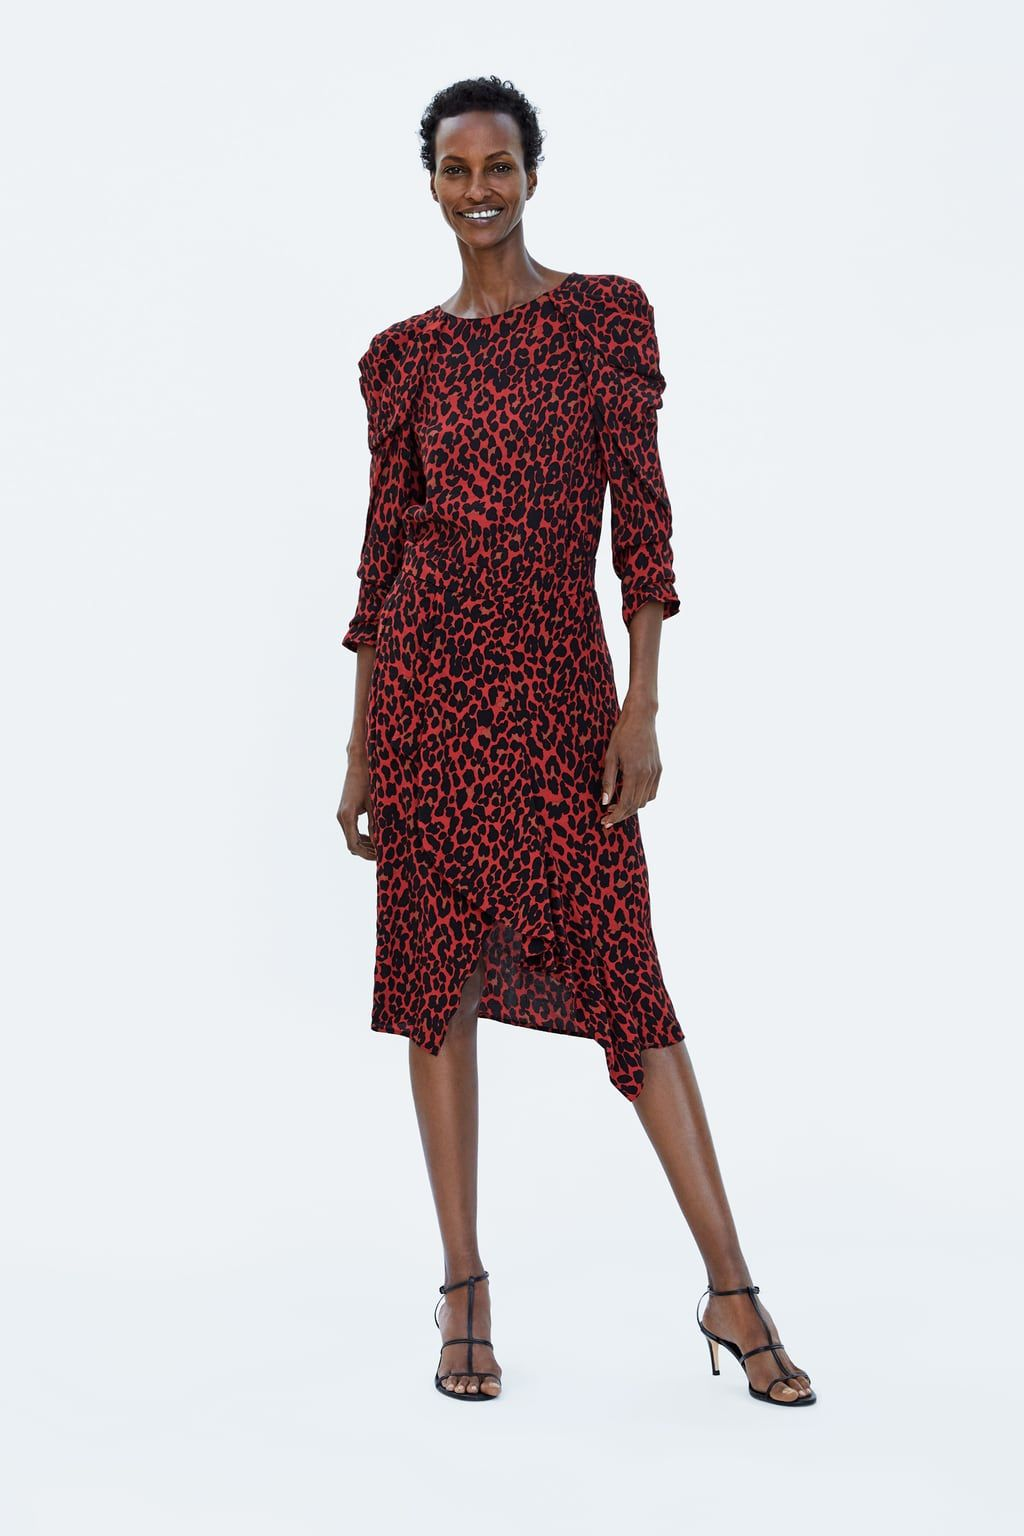 655f829dca FALDA ASIMÉTRICA ESTAMPADO ANIMAL | Zara FW 18 | Animal print skirt ...